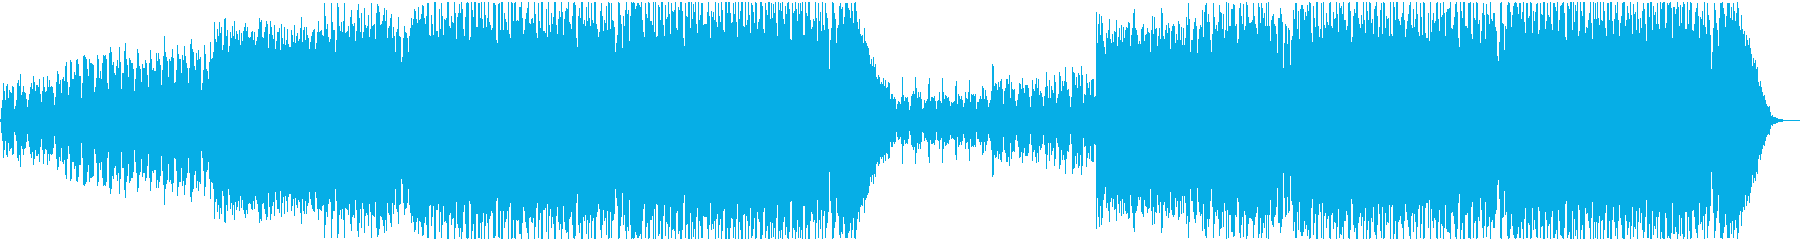 Cheerful and brave EDM's reproduced waveform